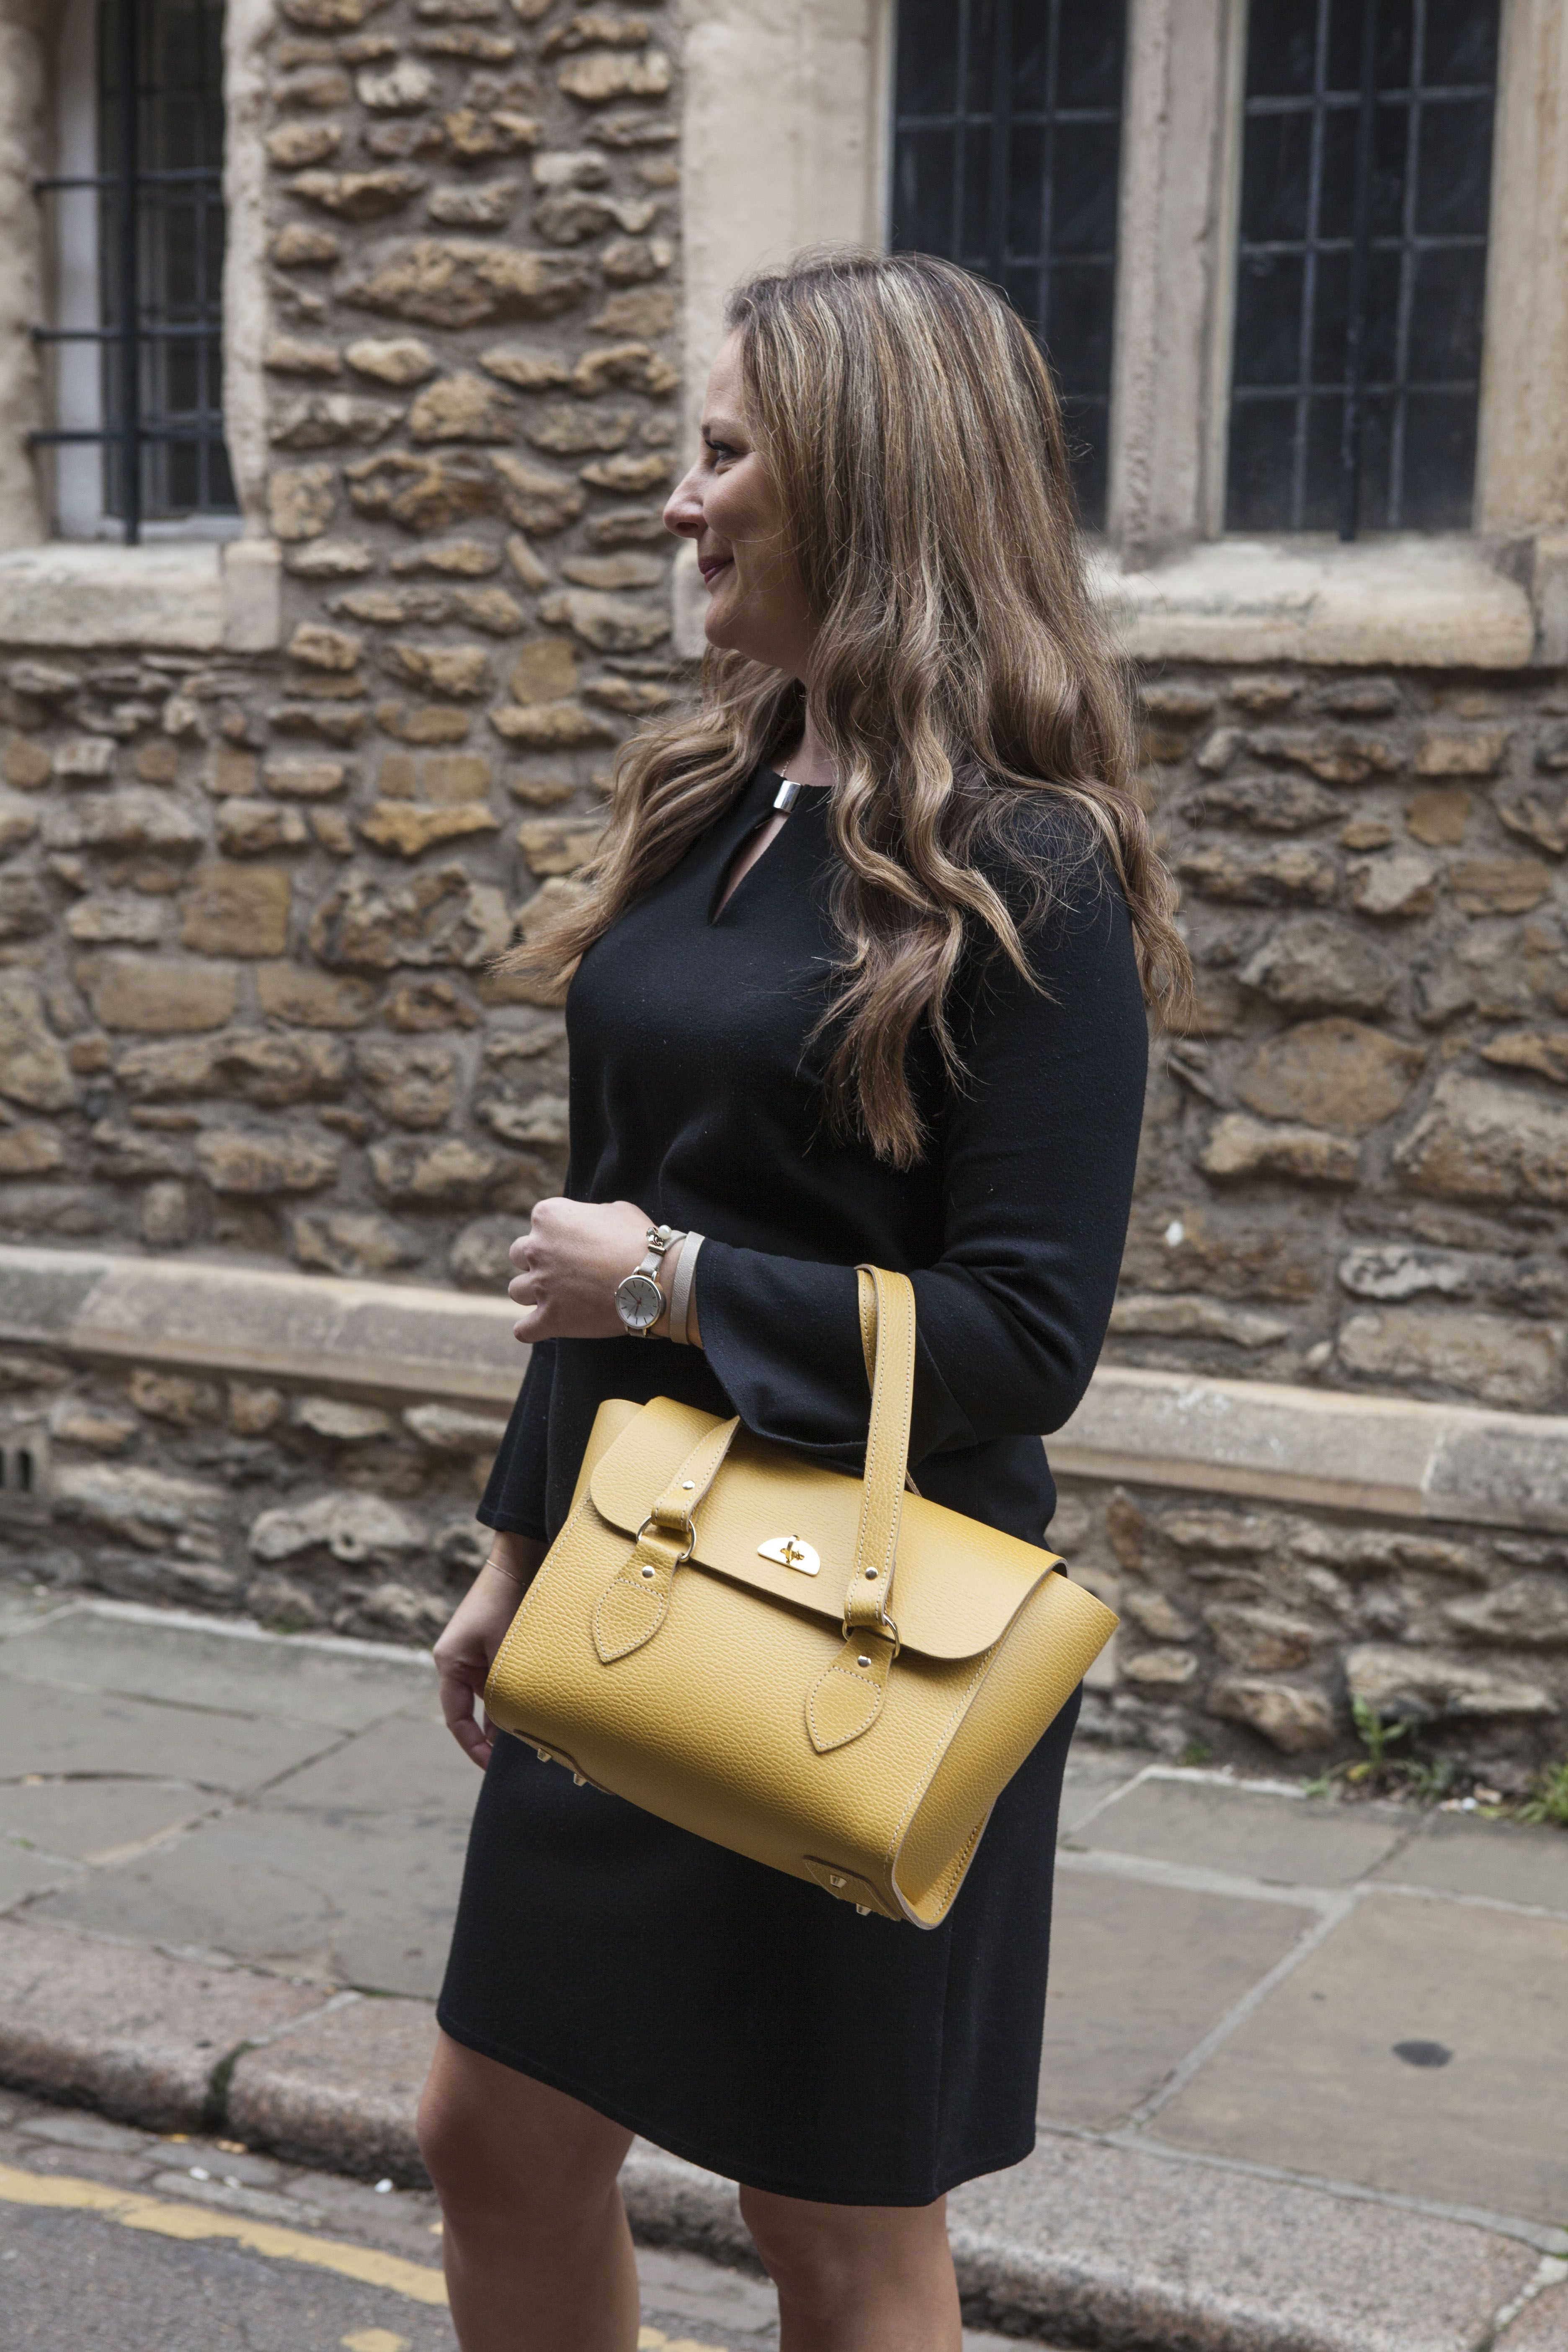 40652adb4 The Emily is the perfect workwear handbag for the smart, sophisticated woman.  Handmade in the UK by The Cambridge Satchel Company.